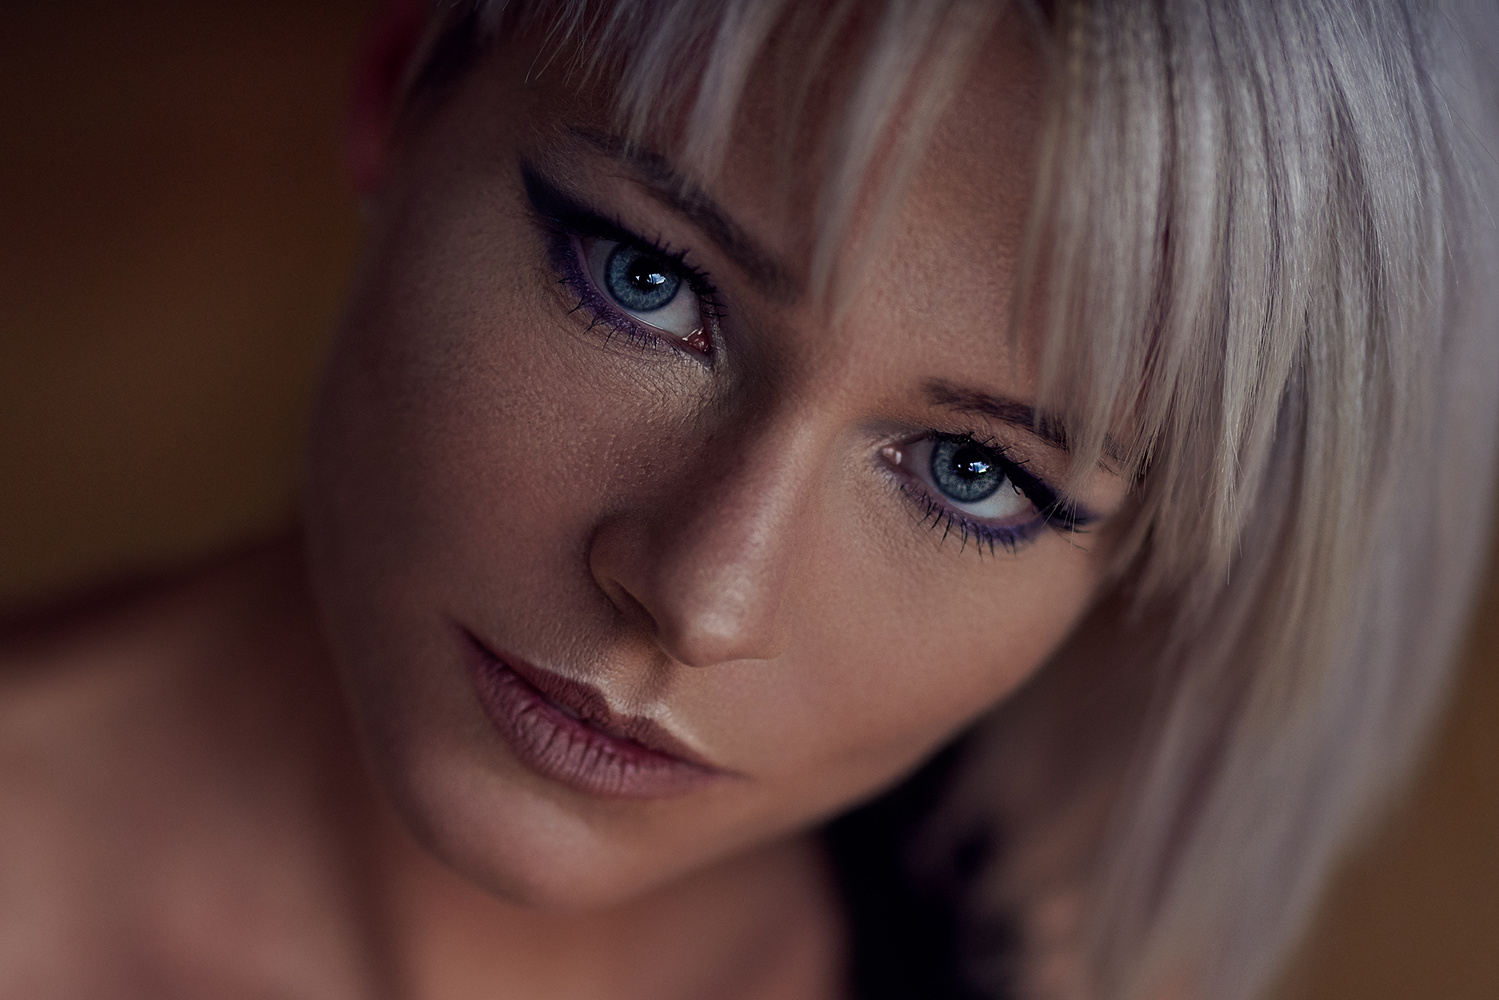 Total Blue Close Up by Design Pictures